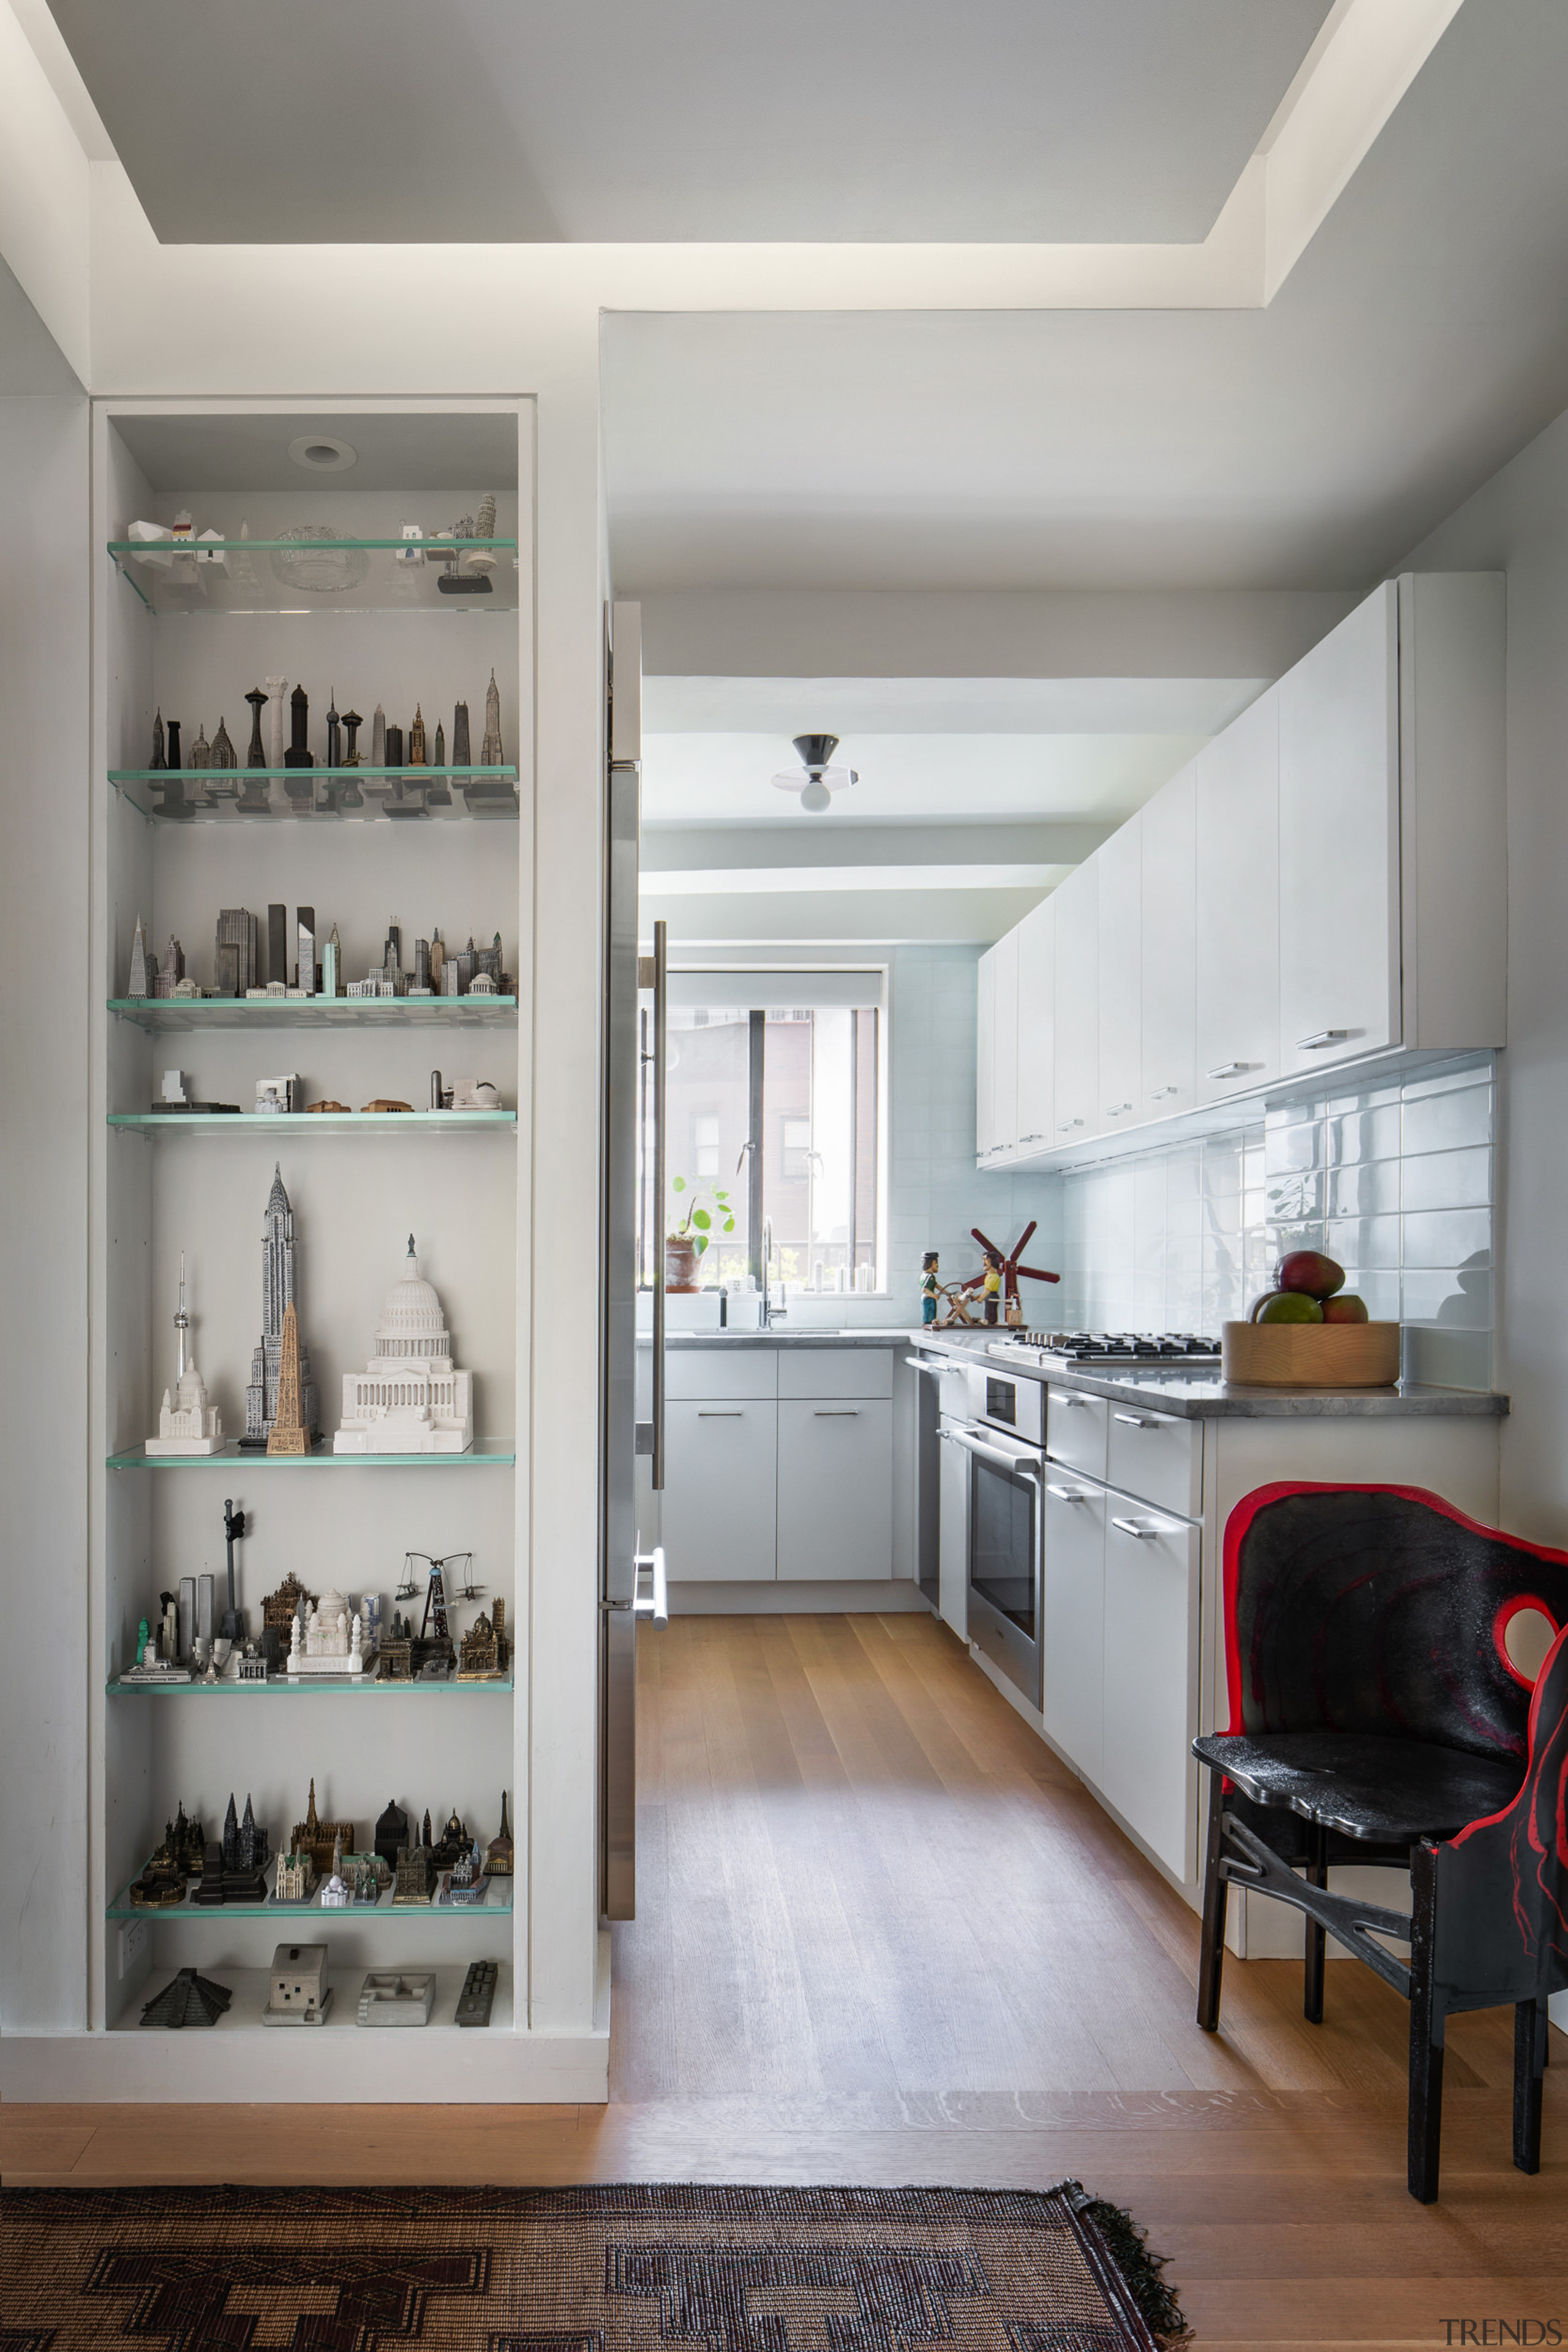 Just outside the kitchen, shelving displays architectural models